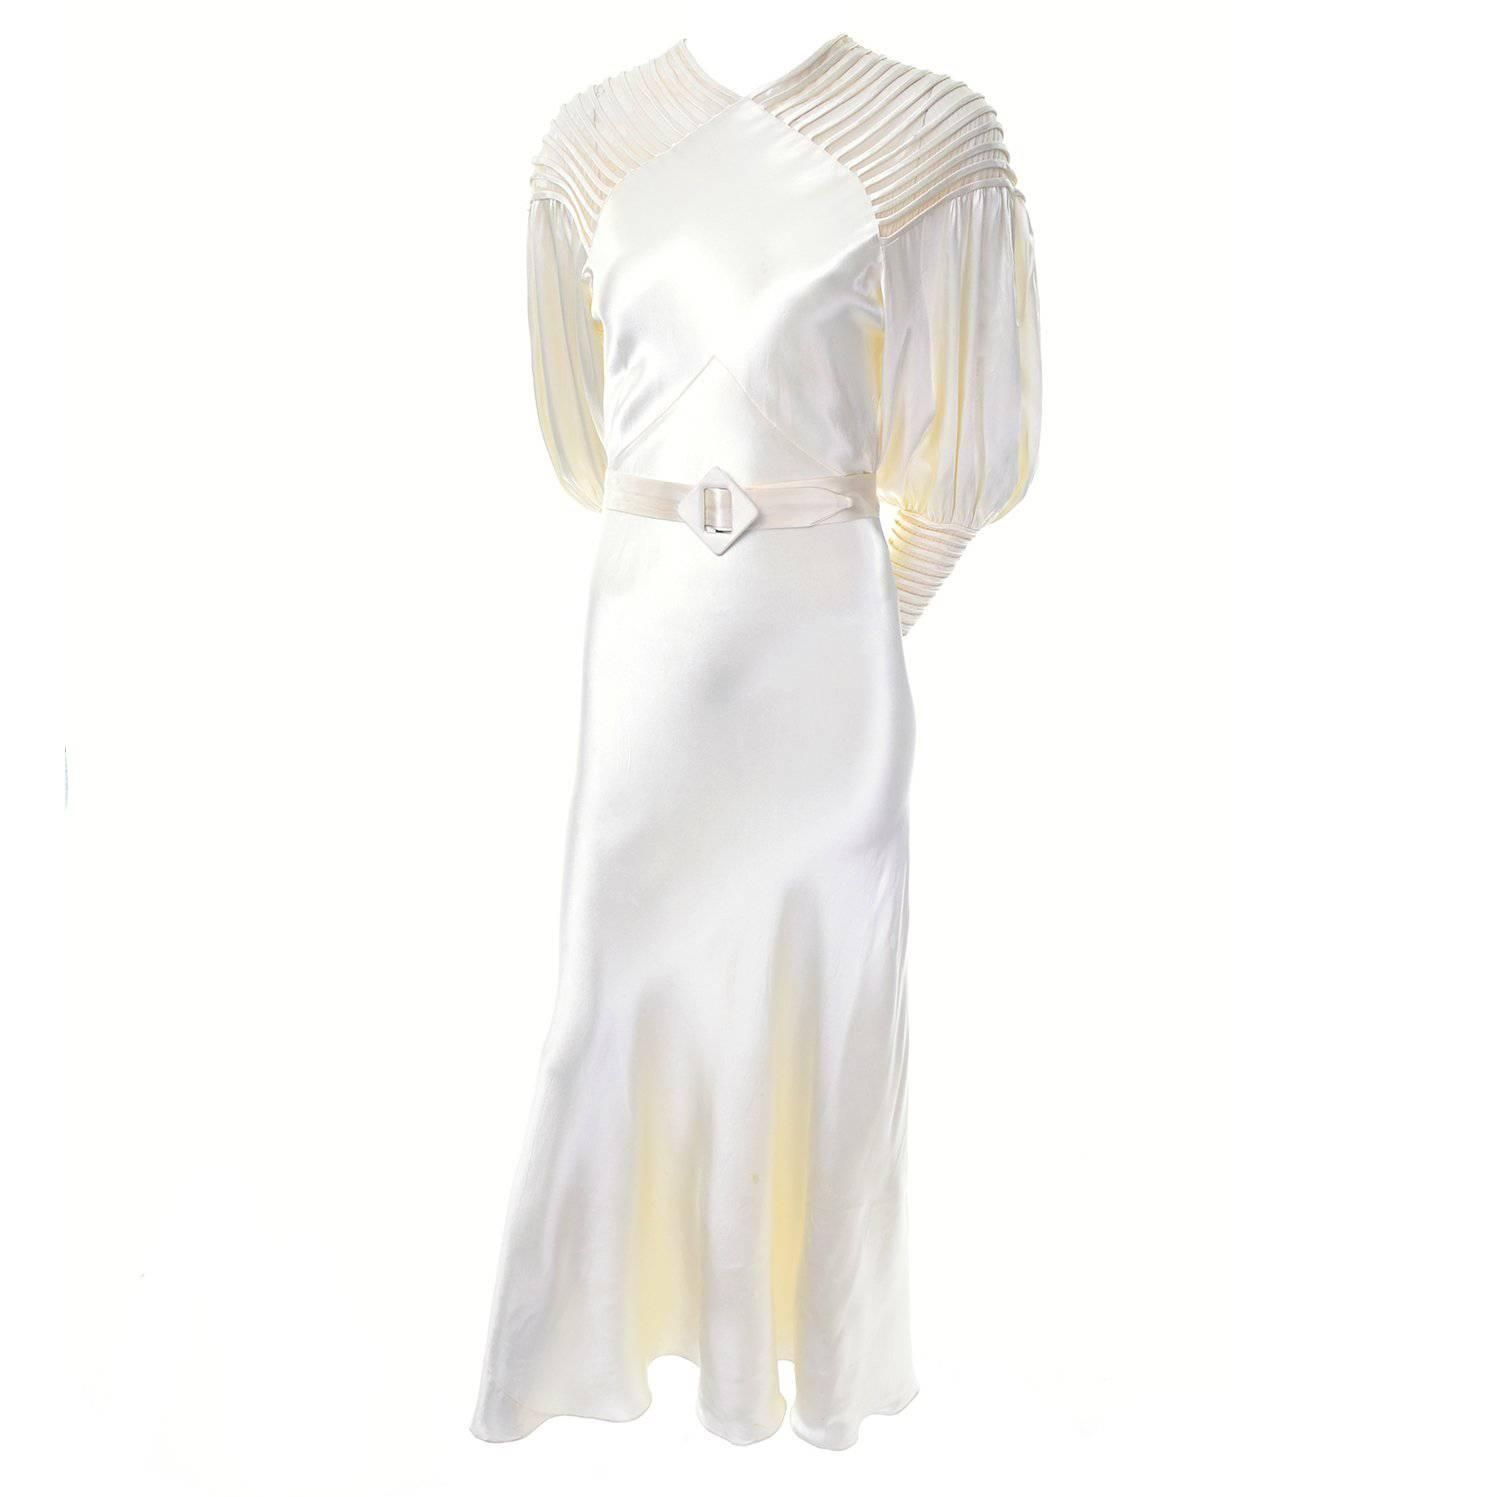 S ivory slipper satin wedding dress gown with leg of mutton